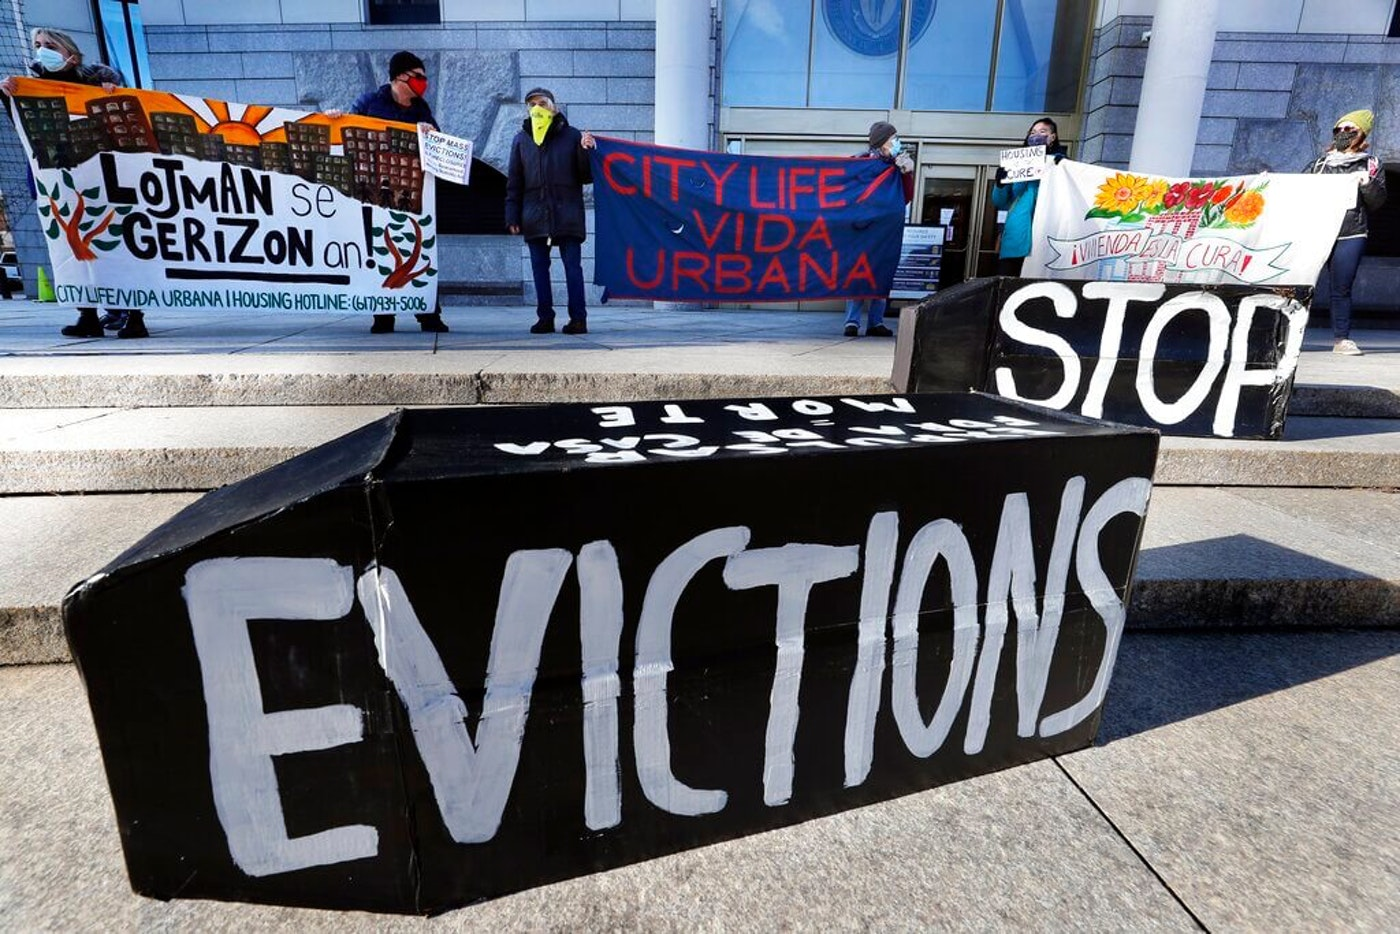 Tenants' rights advocates demonstrate in front of the Edward W. Brooke Courthouse in Boston on Jan. 13. ( Image via AP/Michael Dwyer)